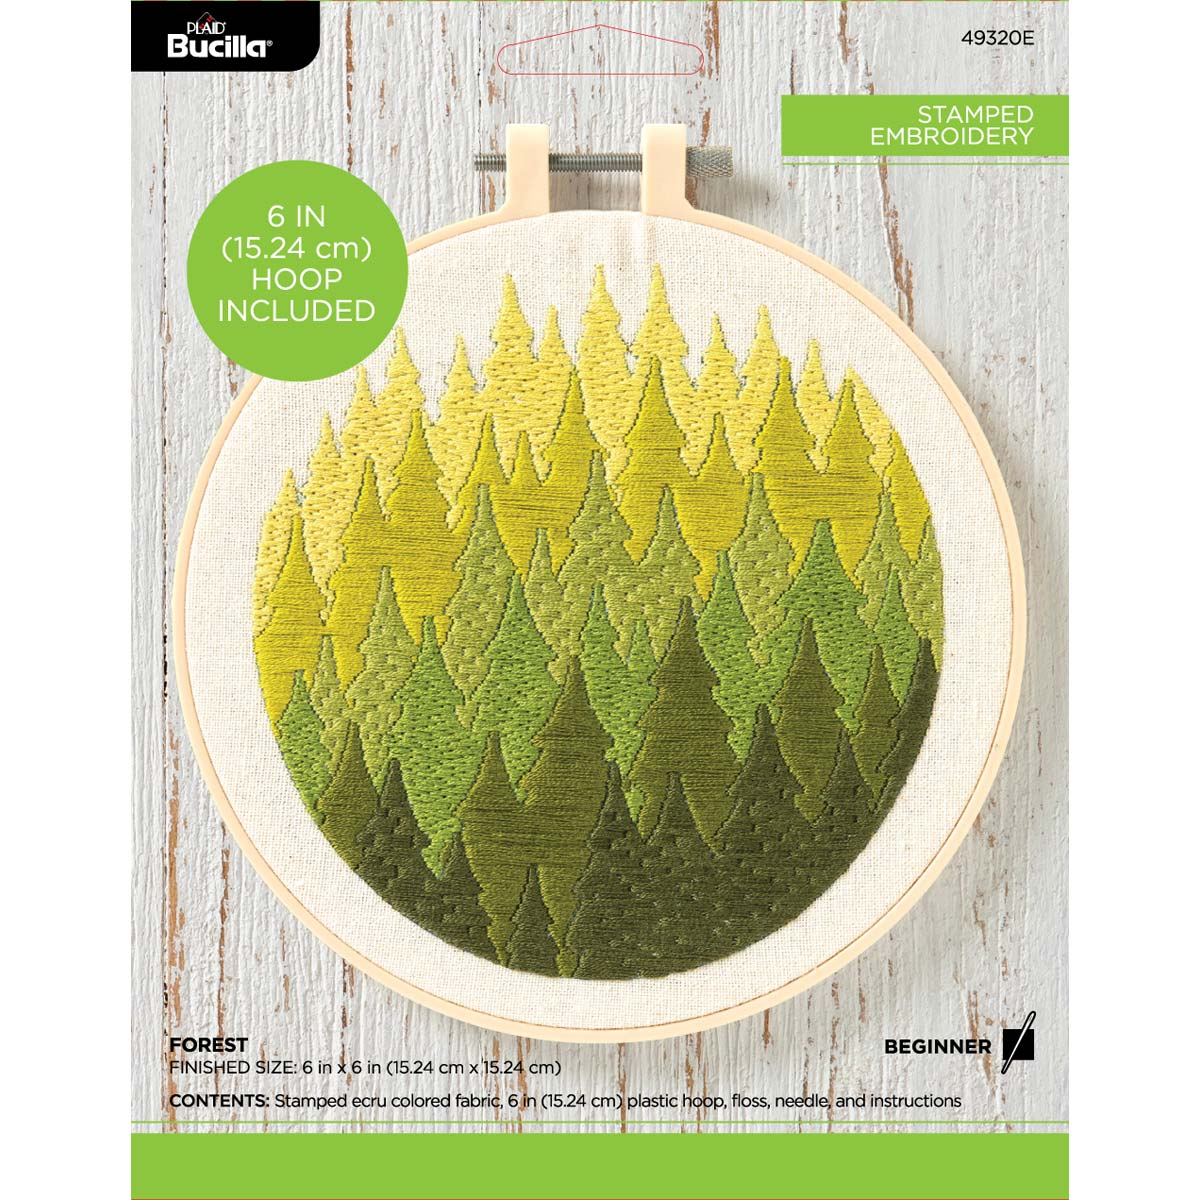 Bucilla ® Stamped Embroidery - Forest - 49320E